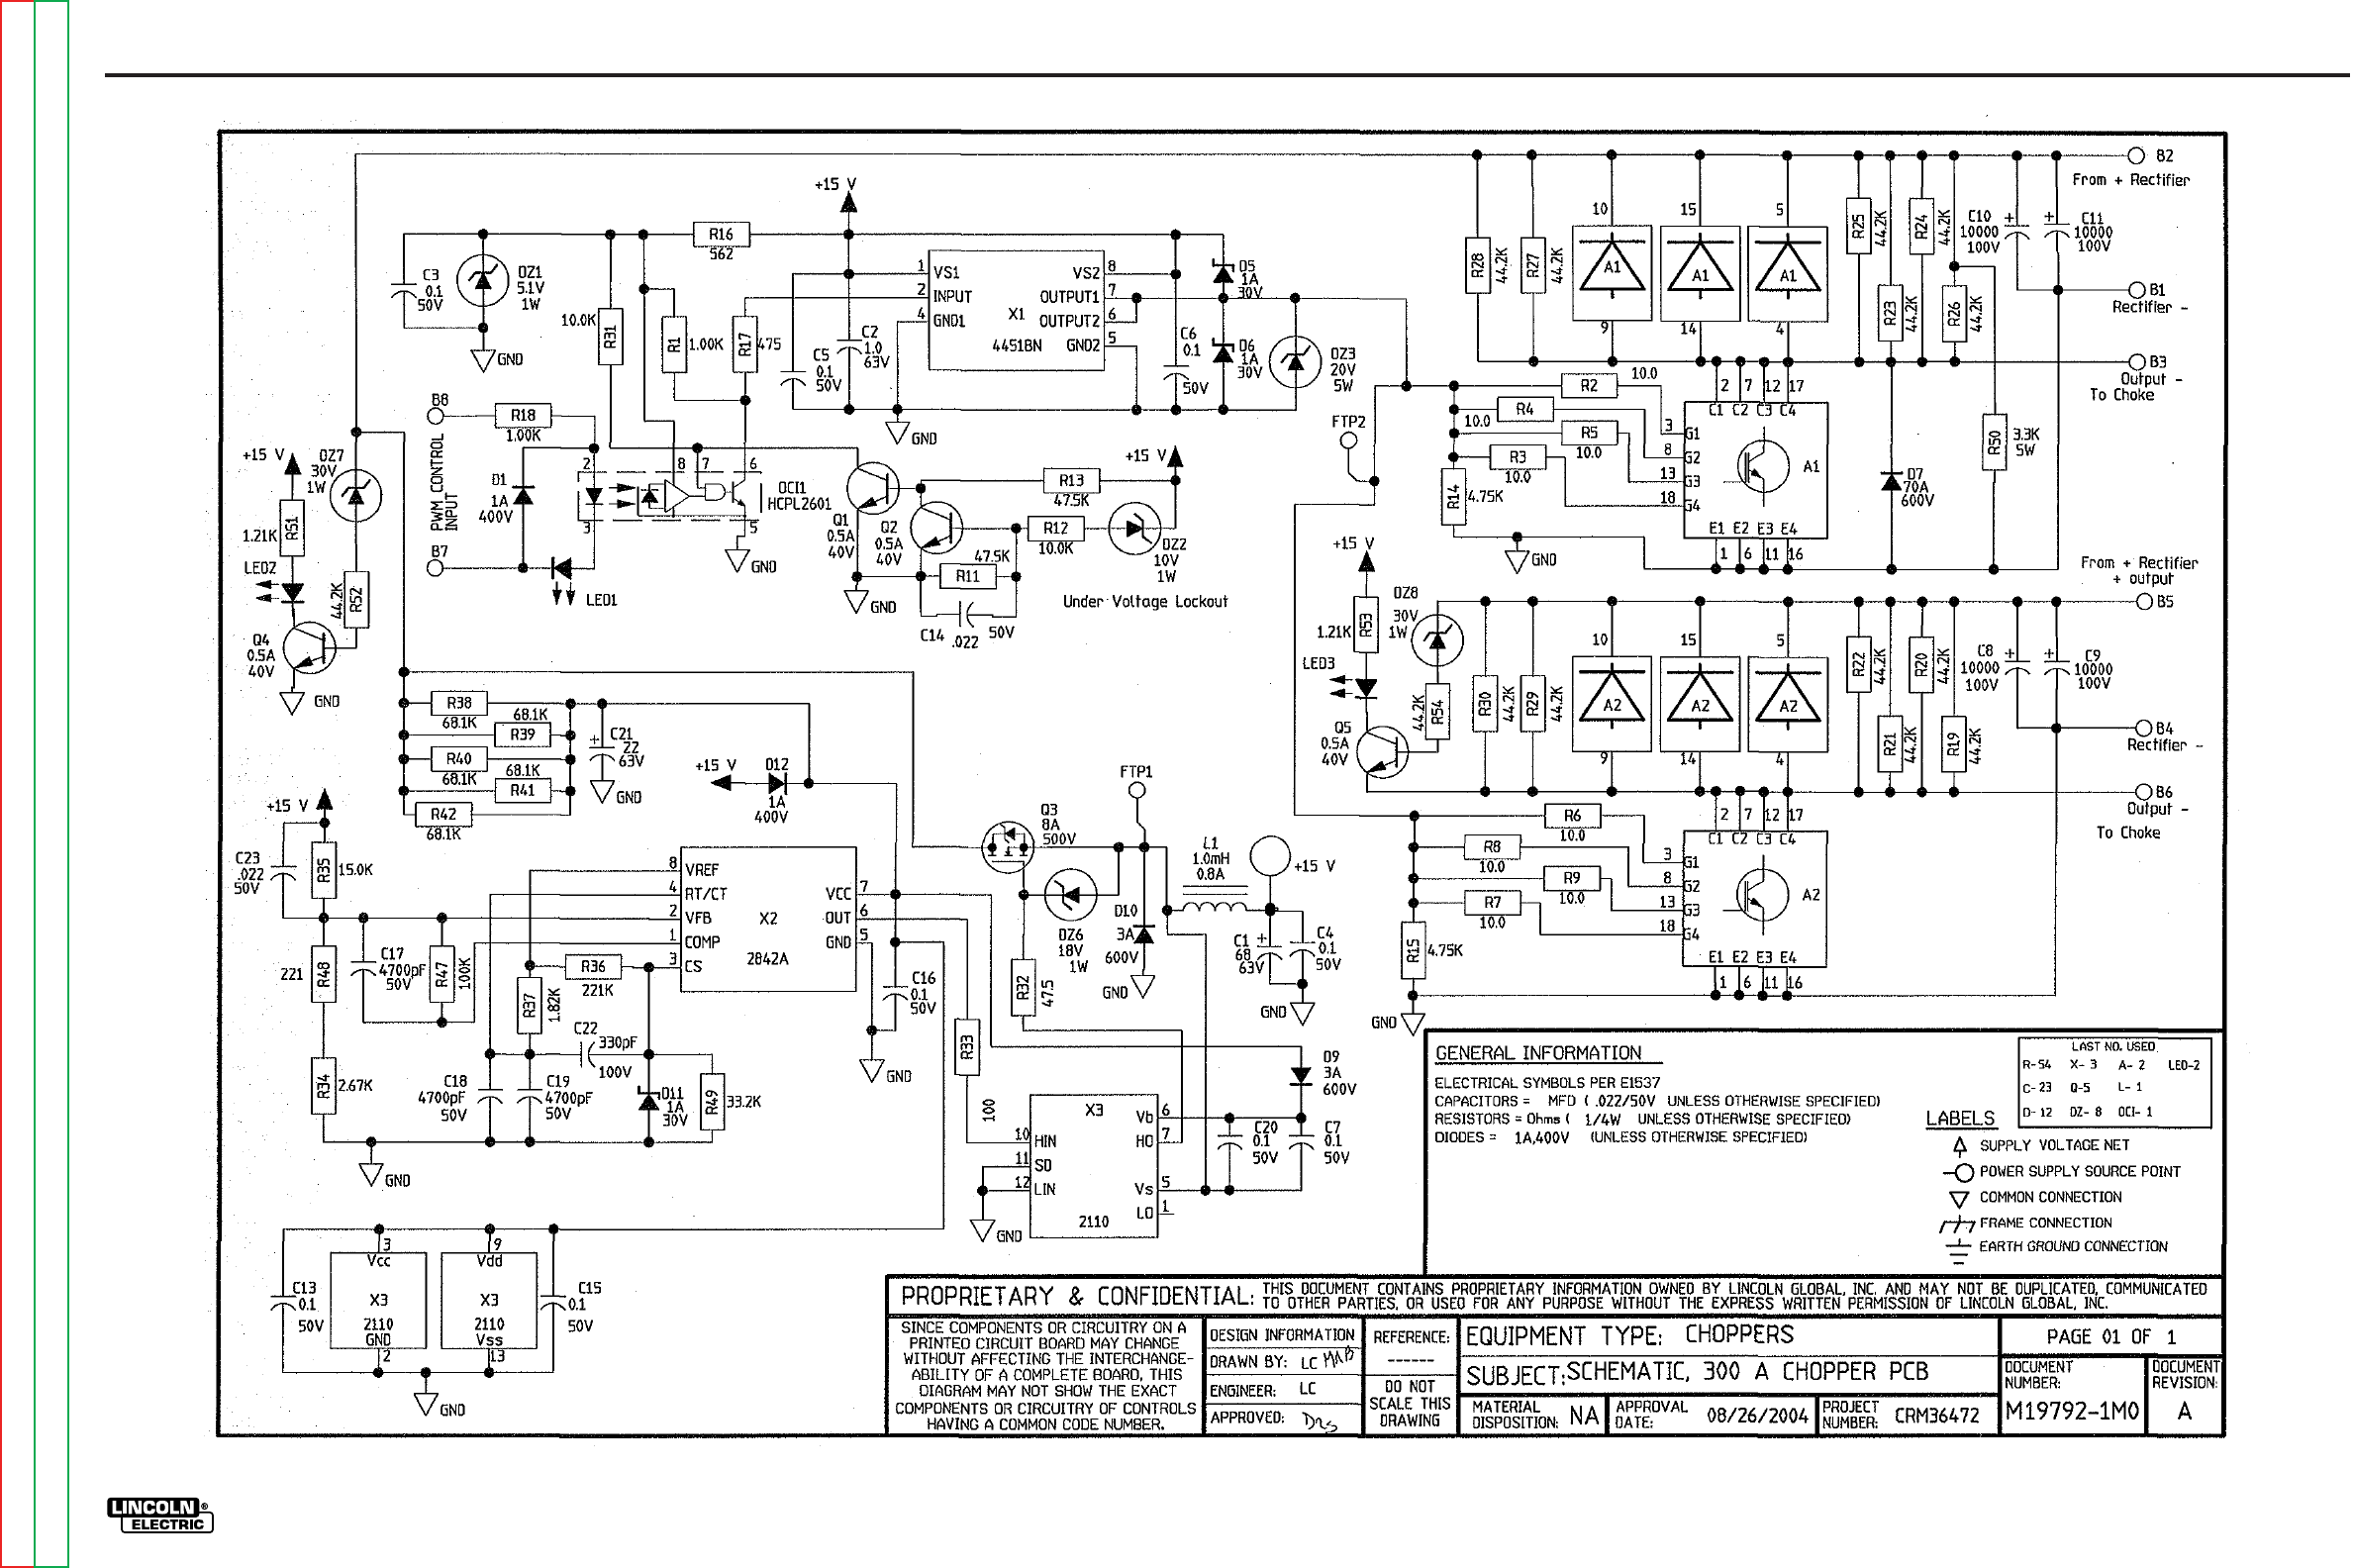 welding plug wiring diagram wirdig welder wiring diagram lincoln get image about wiring diagram